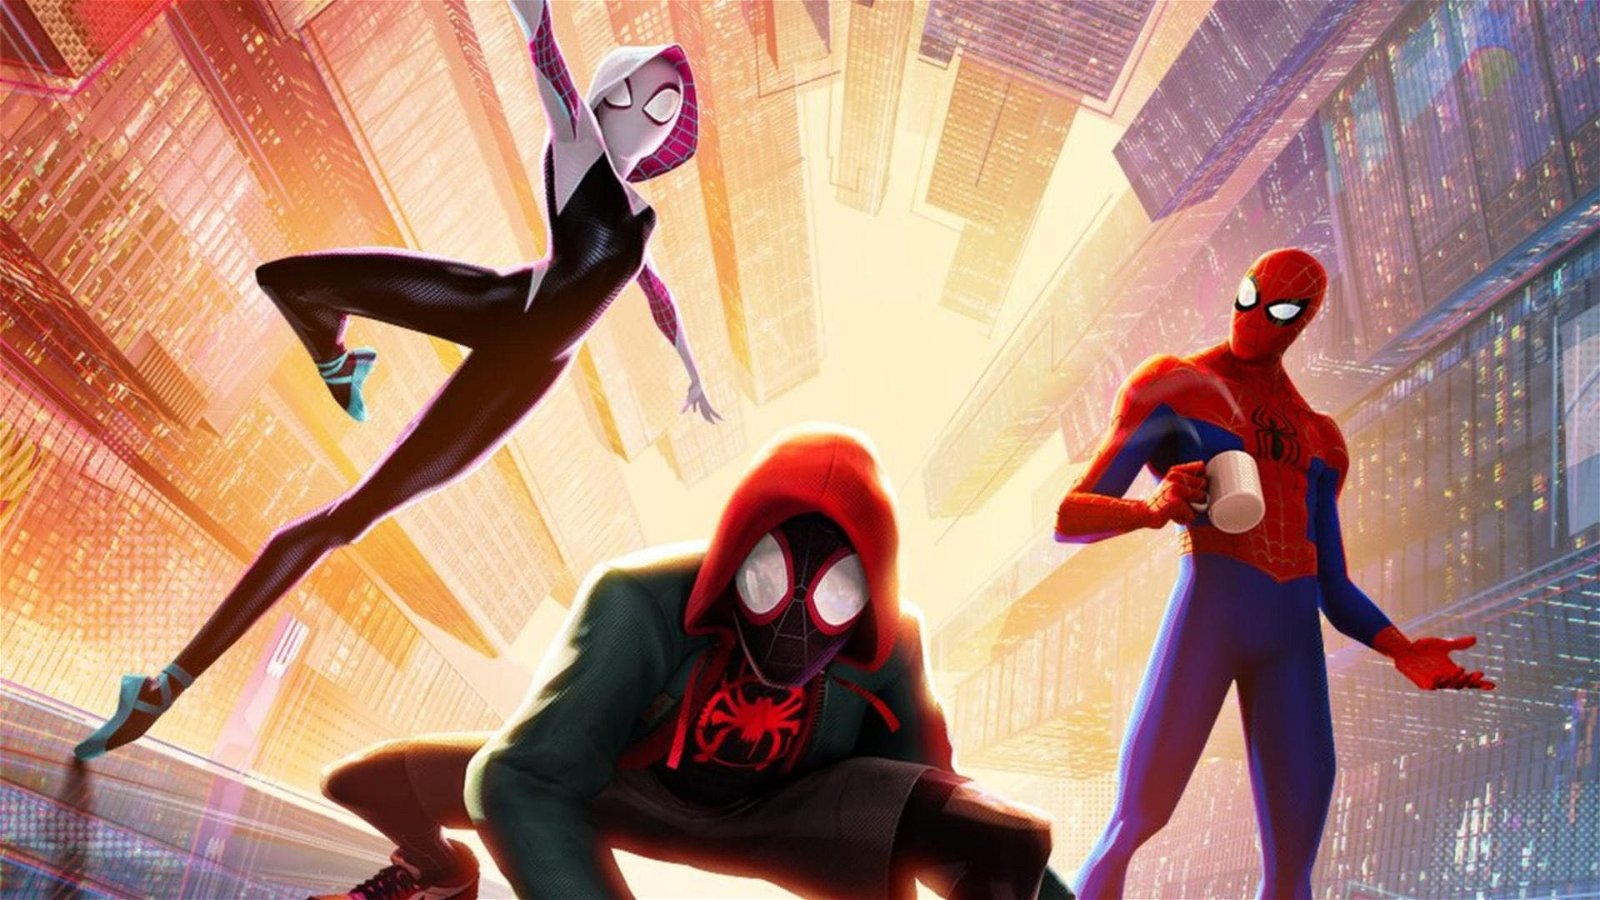 Spider-Man: Into the Spider-Verse Sequel Pushed Back to October 2022 1